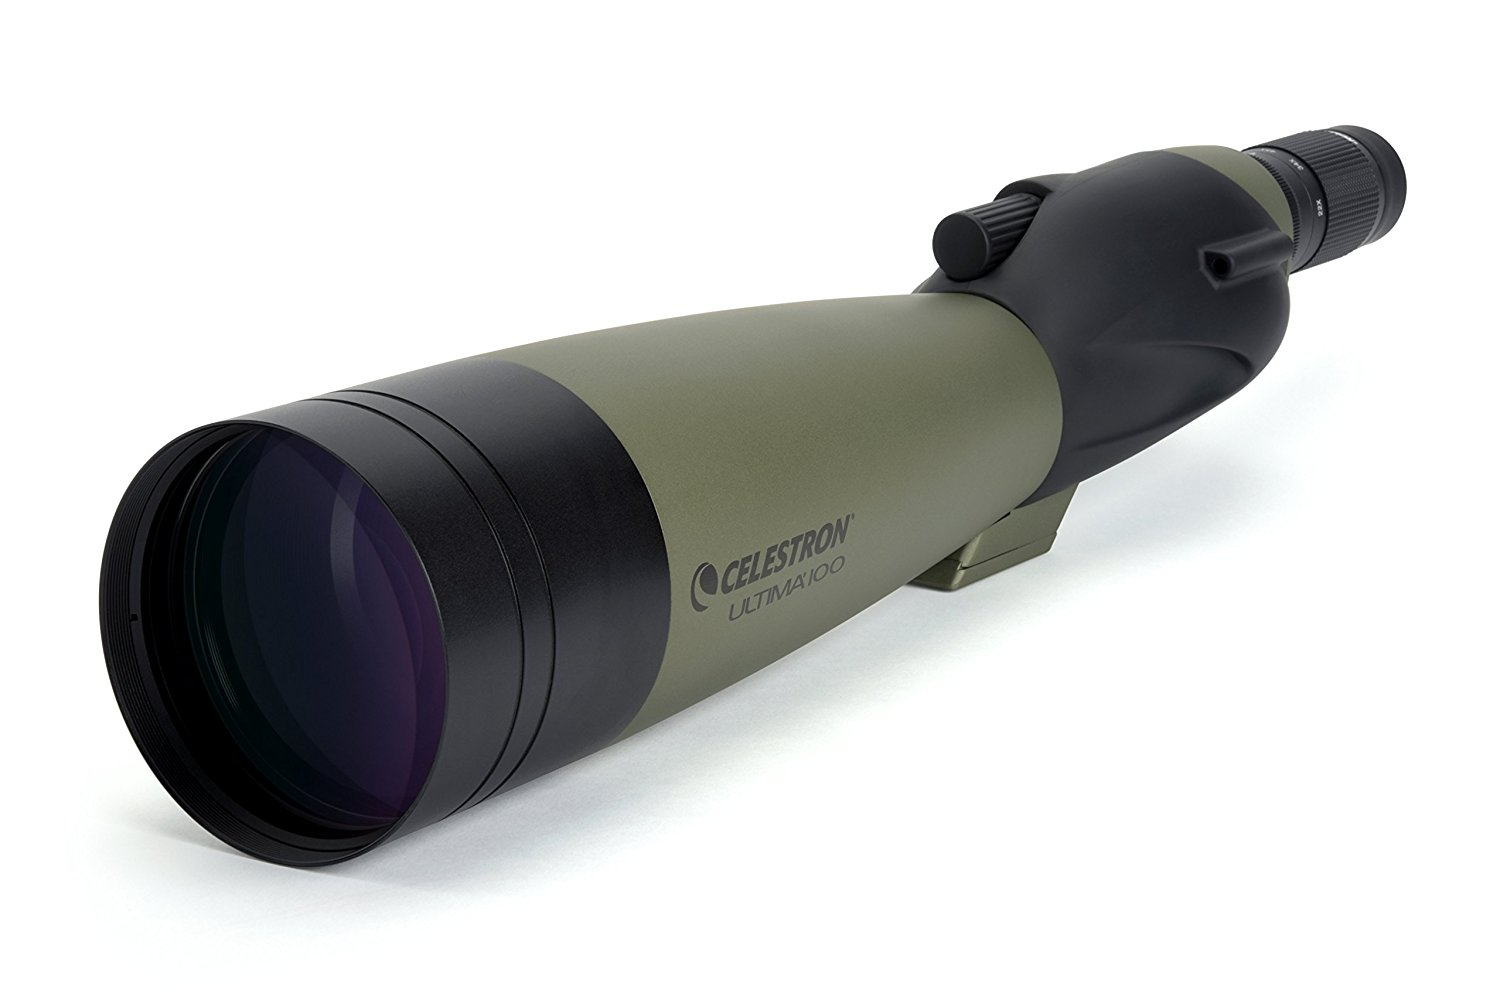 Celestron Ultima Waterproof Spotting Scope – Available in 6 Styles